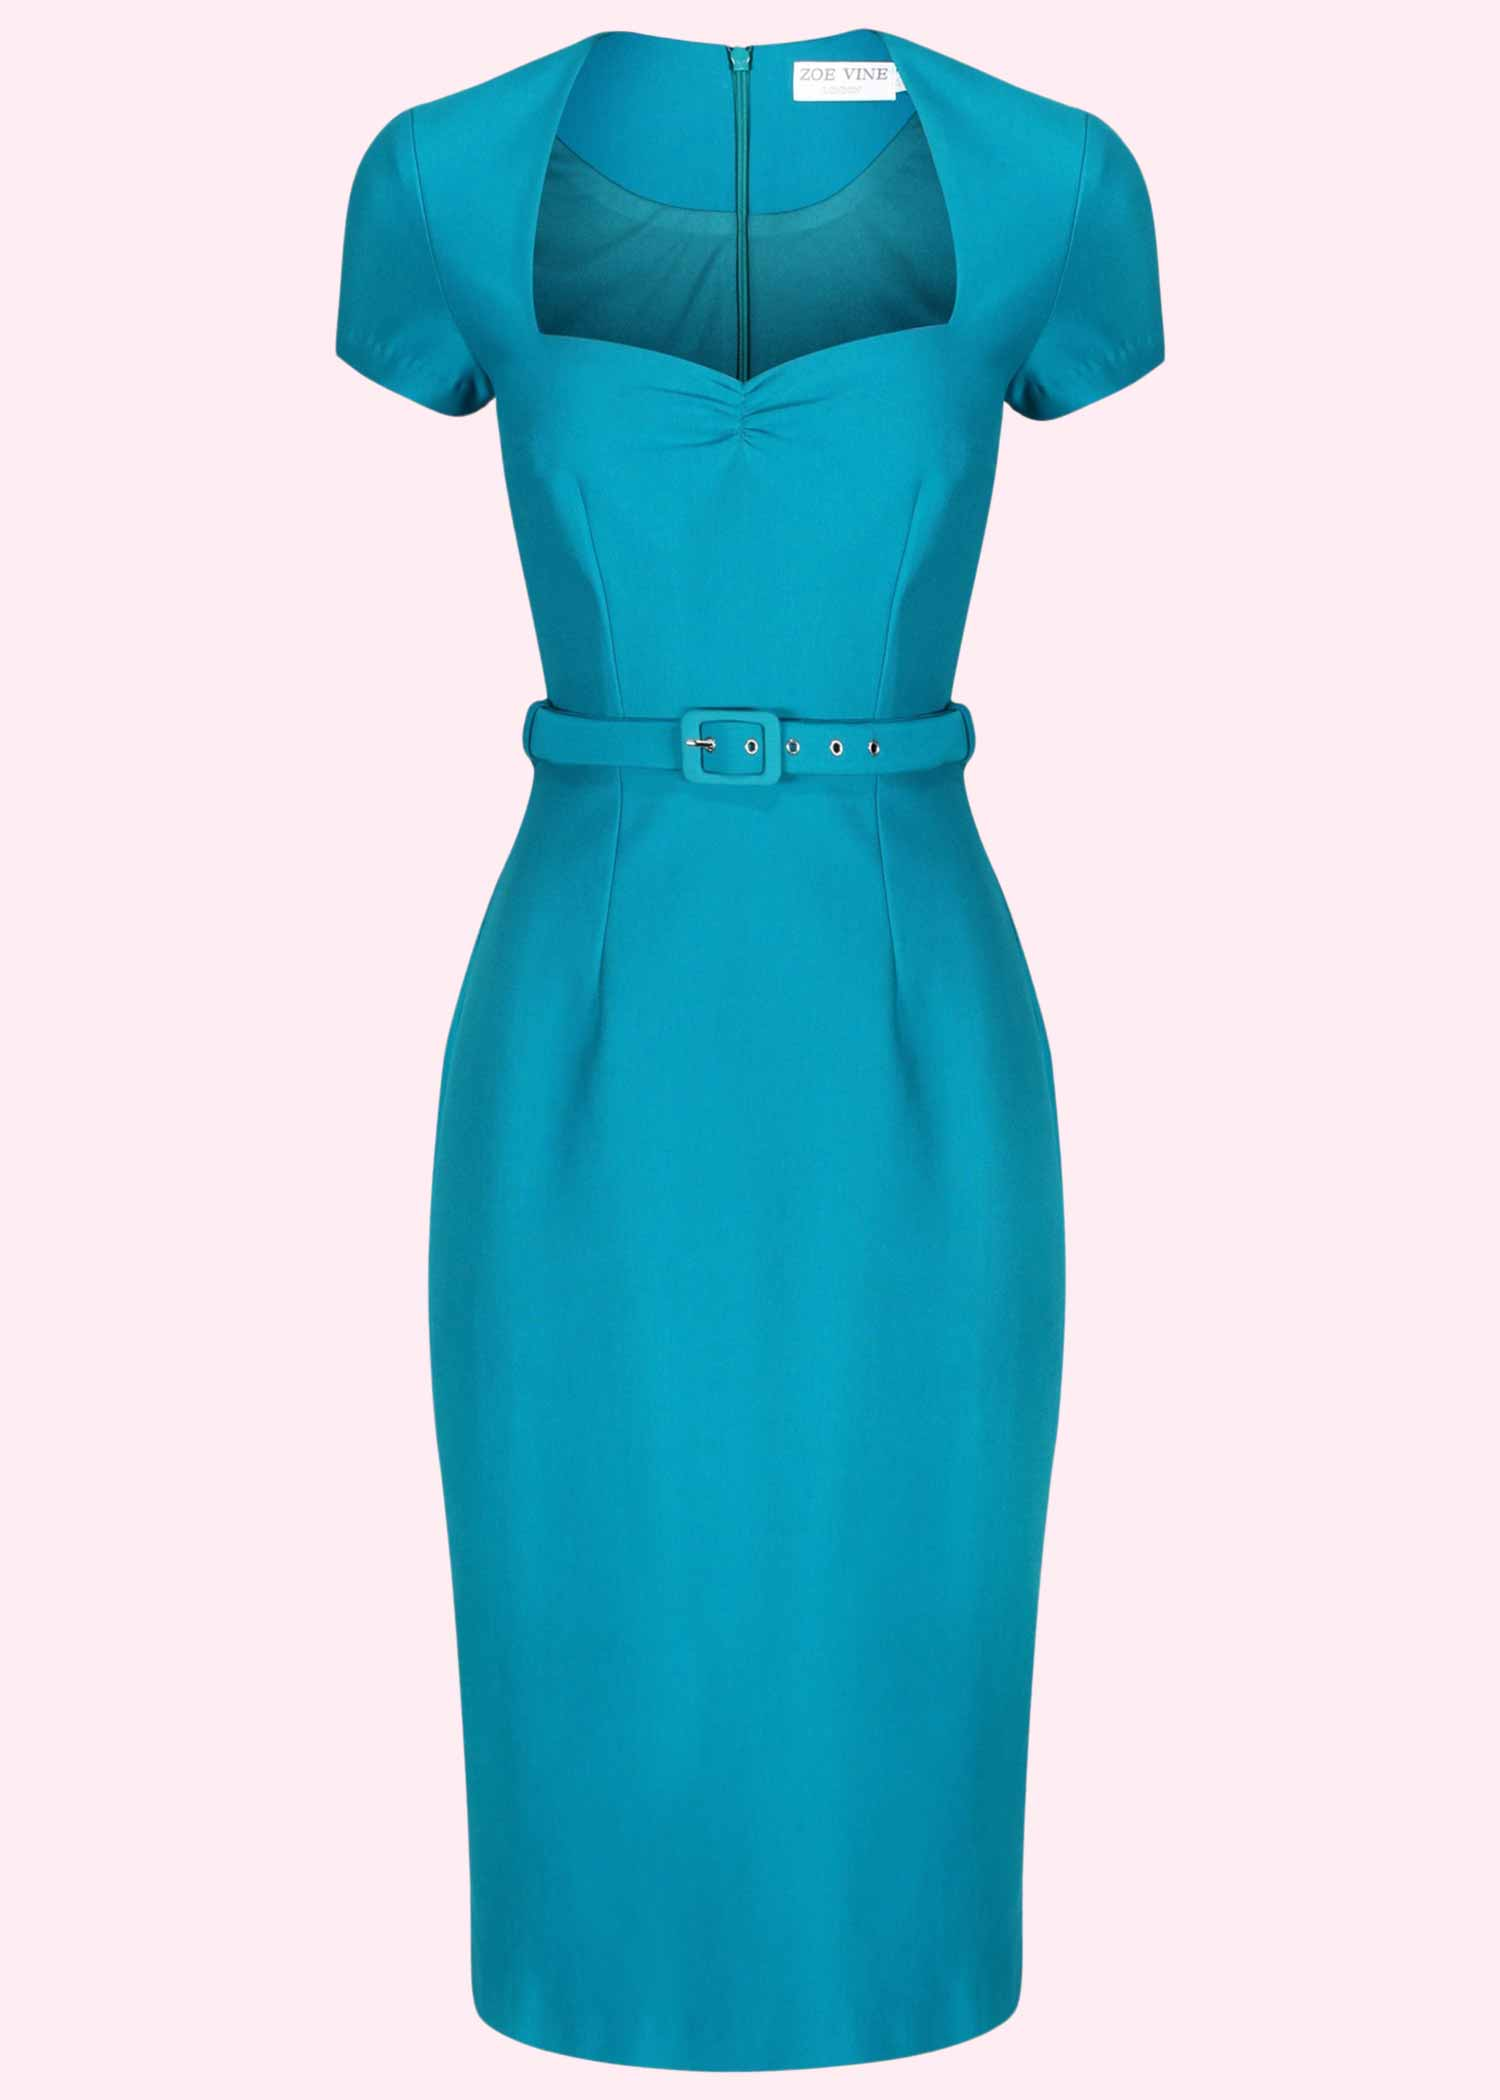 Turquoise pencil dress in 50s style from Zoe Vine